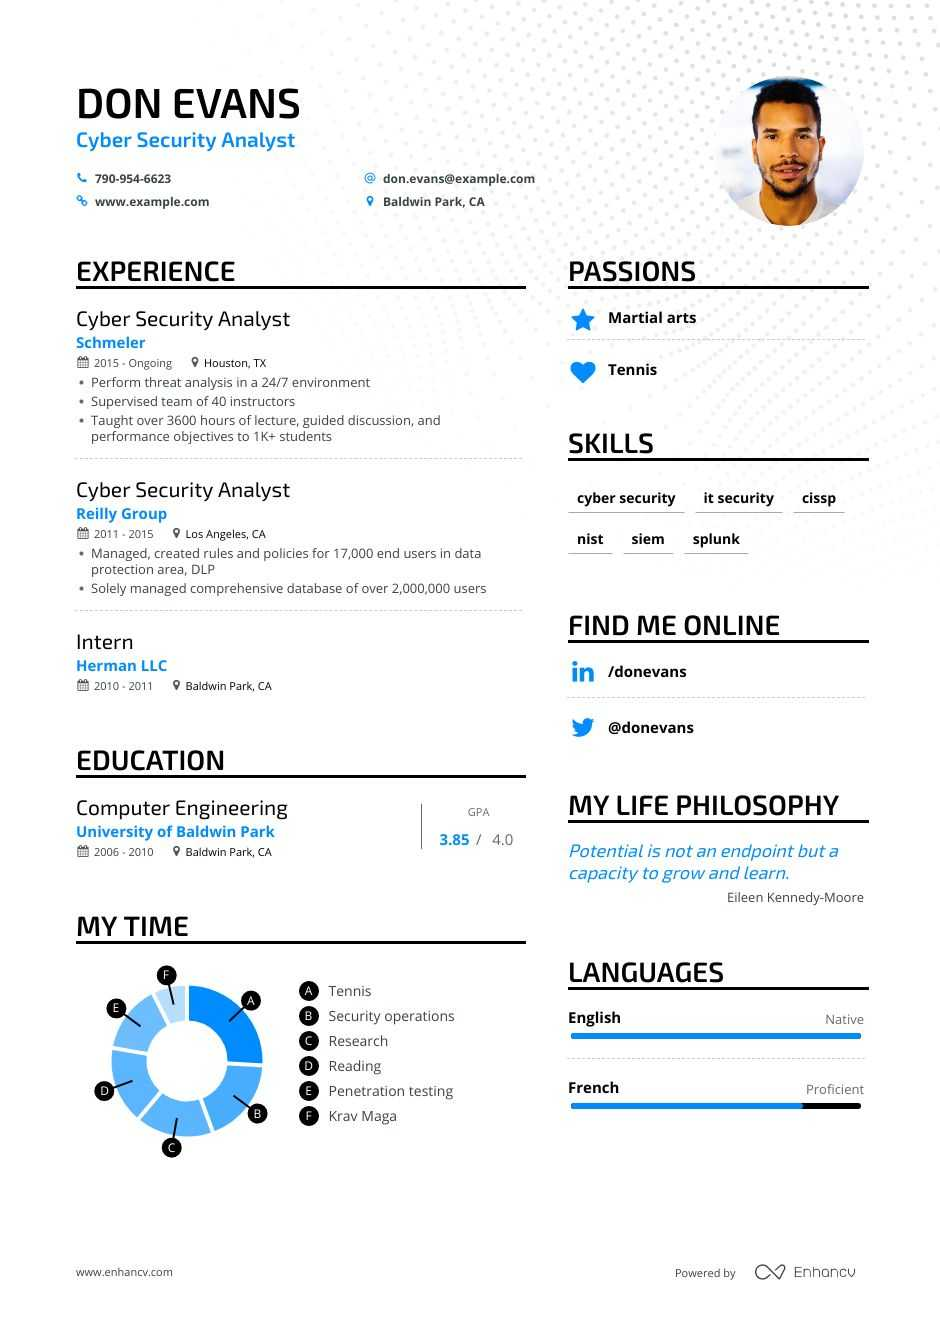 cyber security analyst resume examples guide pro tips enhancv information sample family Resume Information Security Analyst Sample Resume